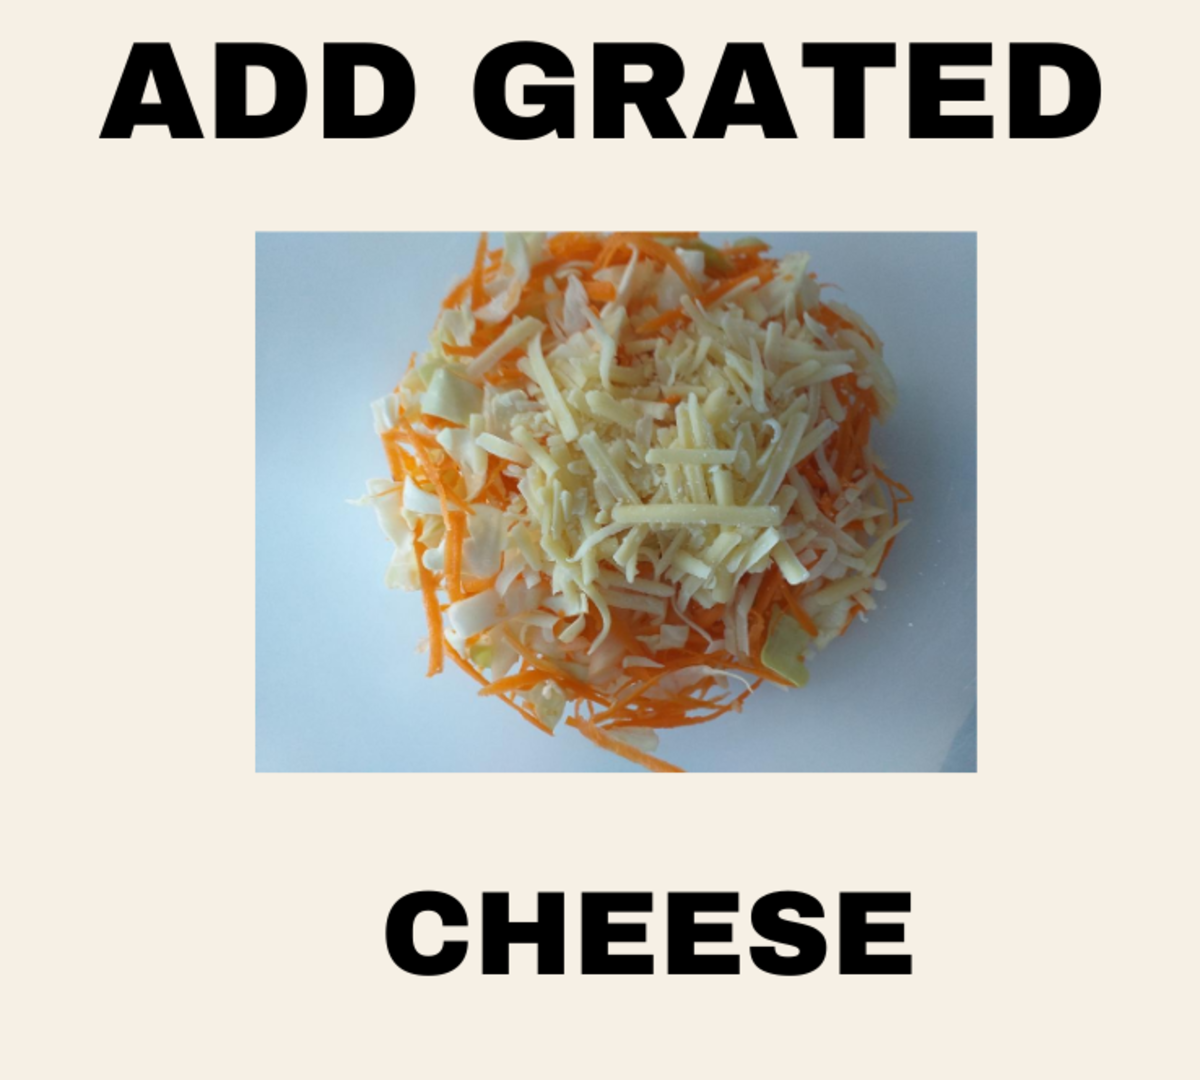 Add grated cheese.